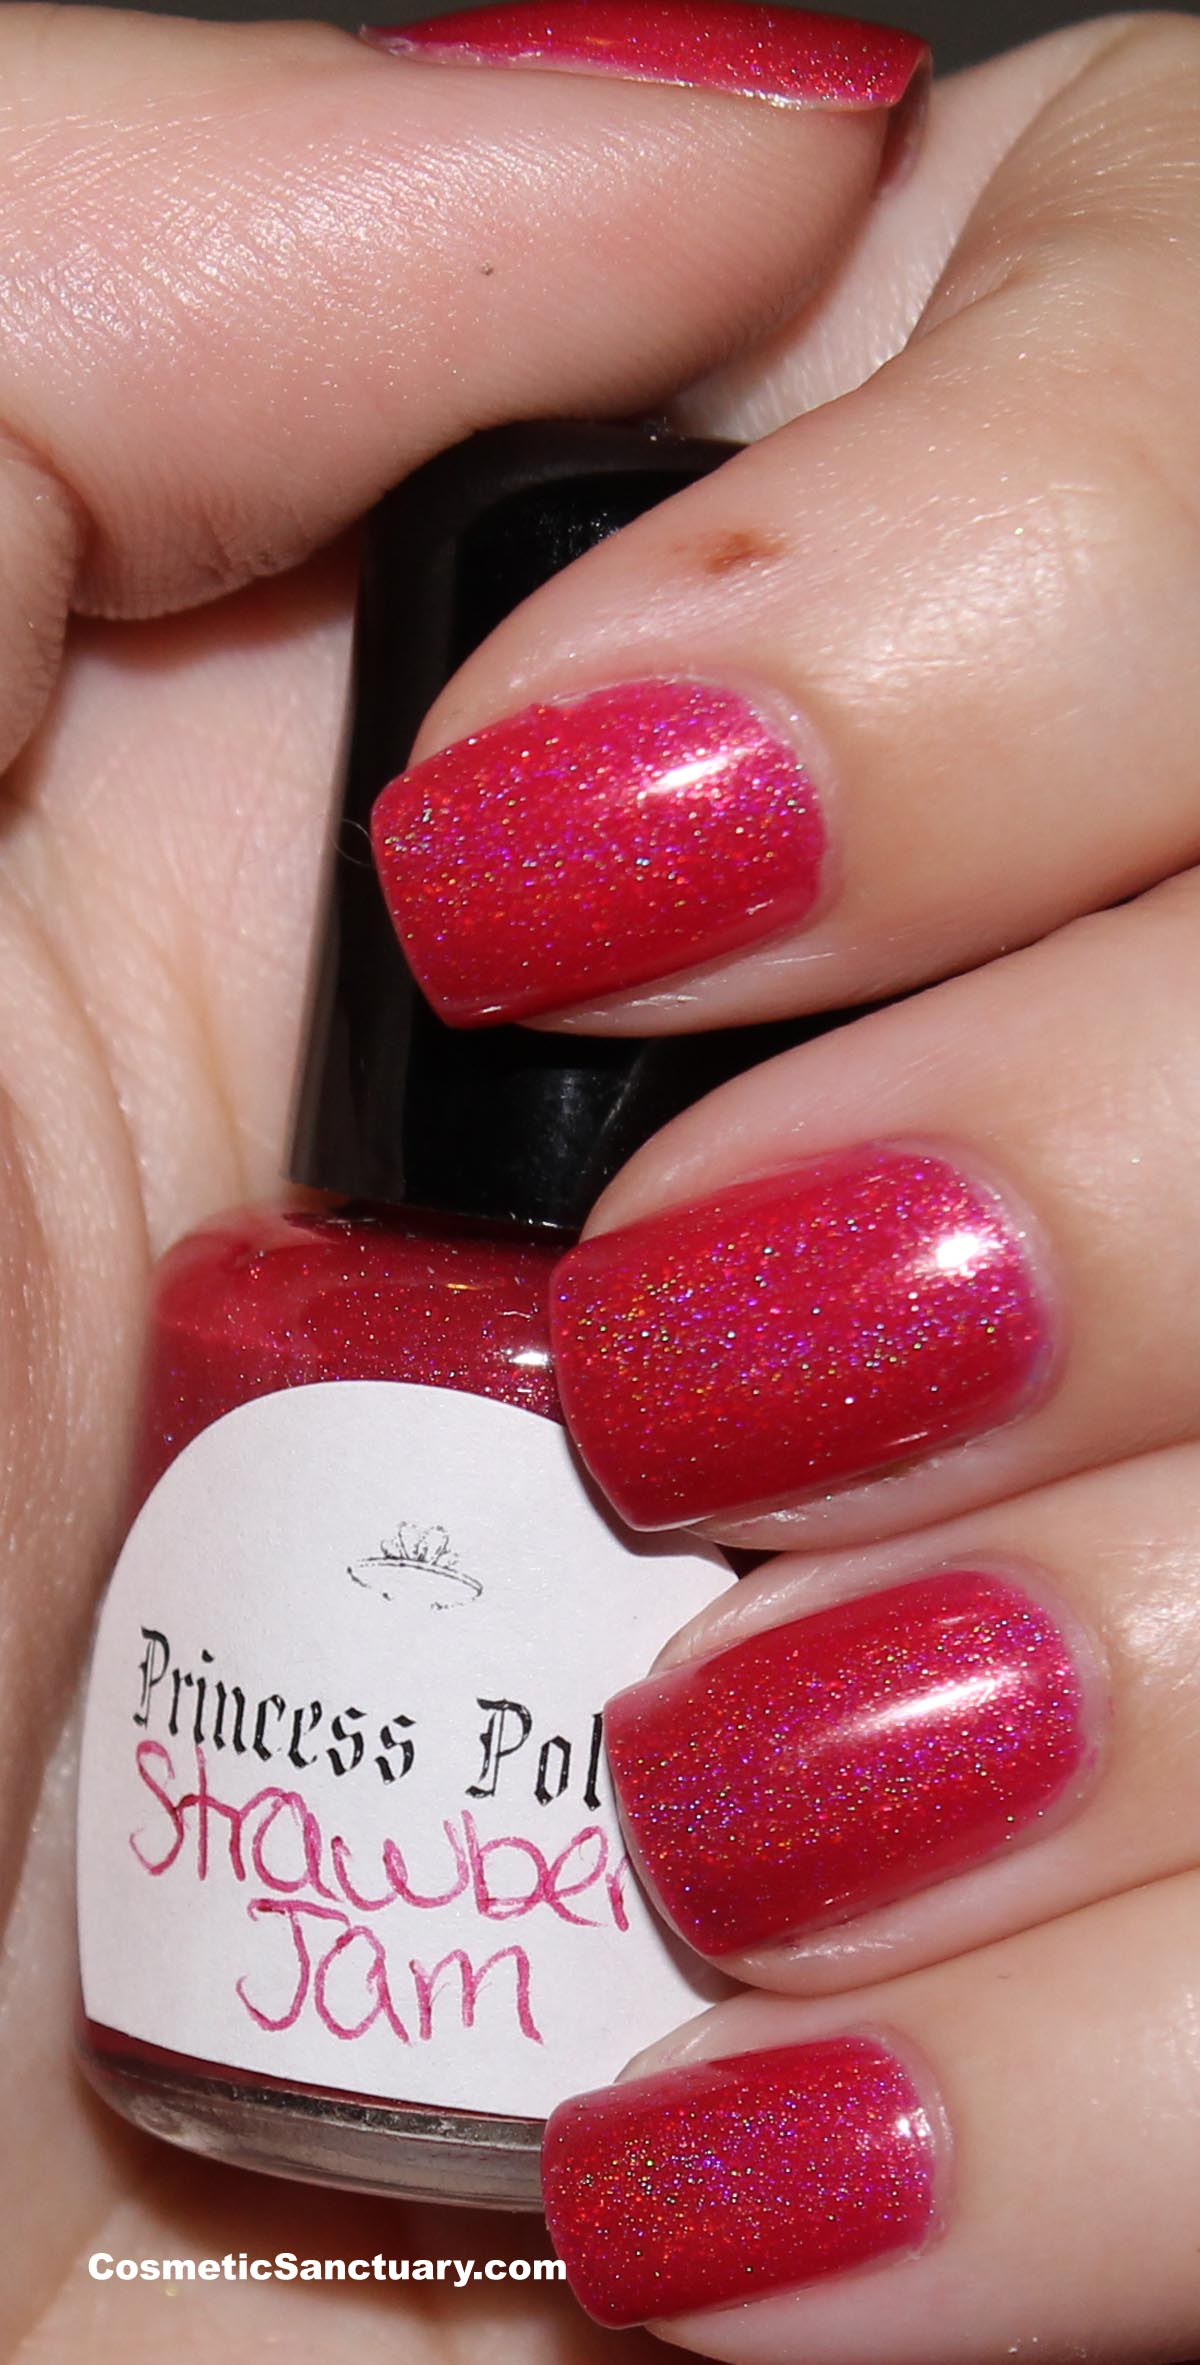 Princess Polish – Strawberry Jam Swatch and Review